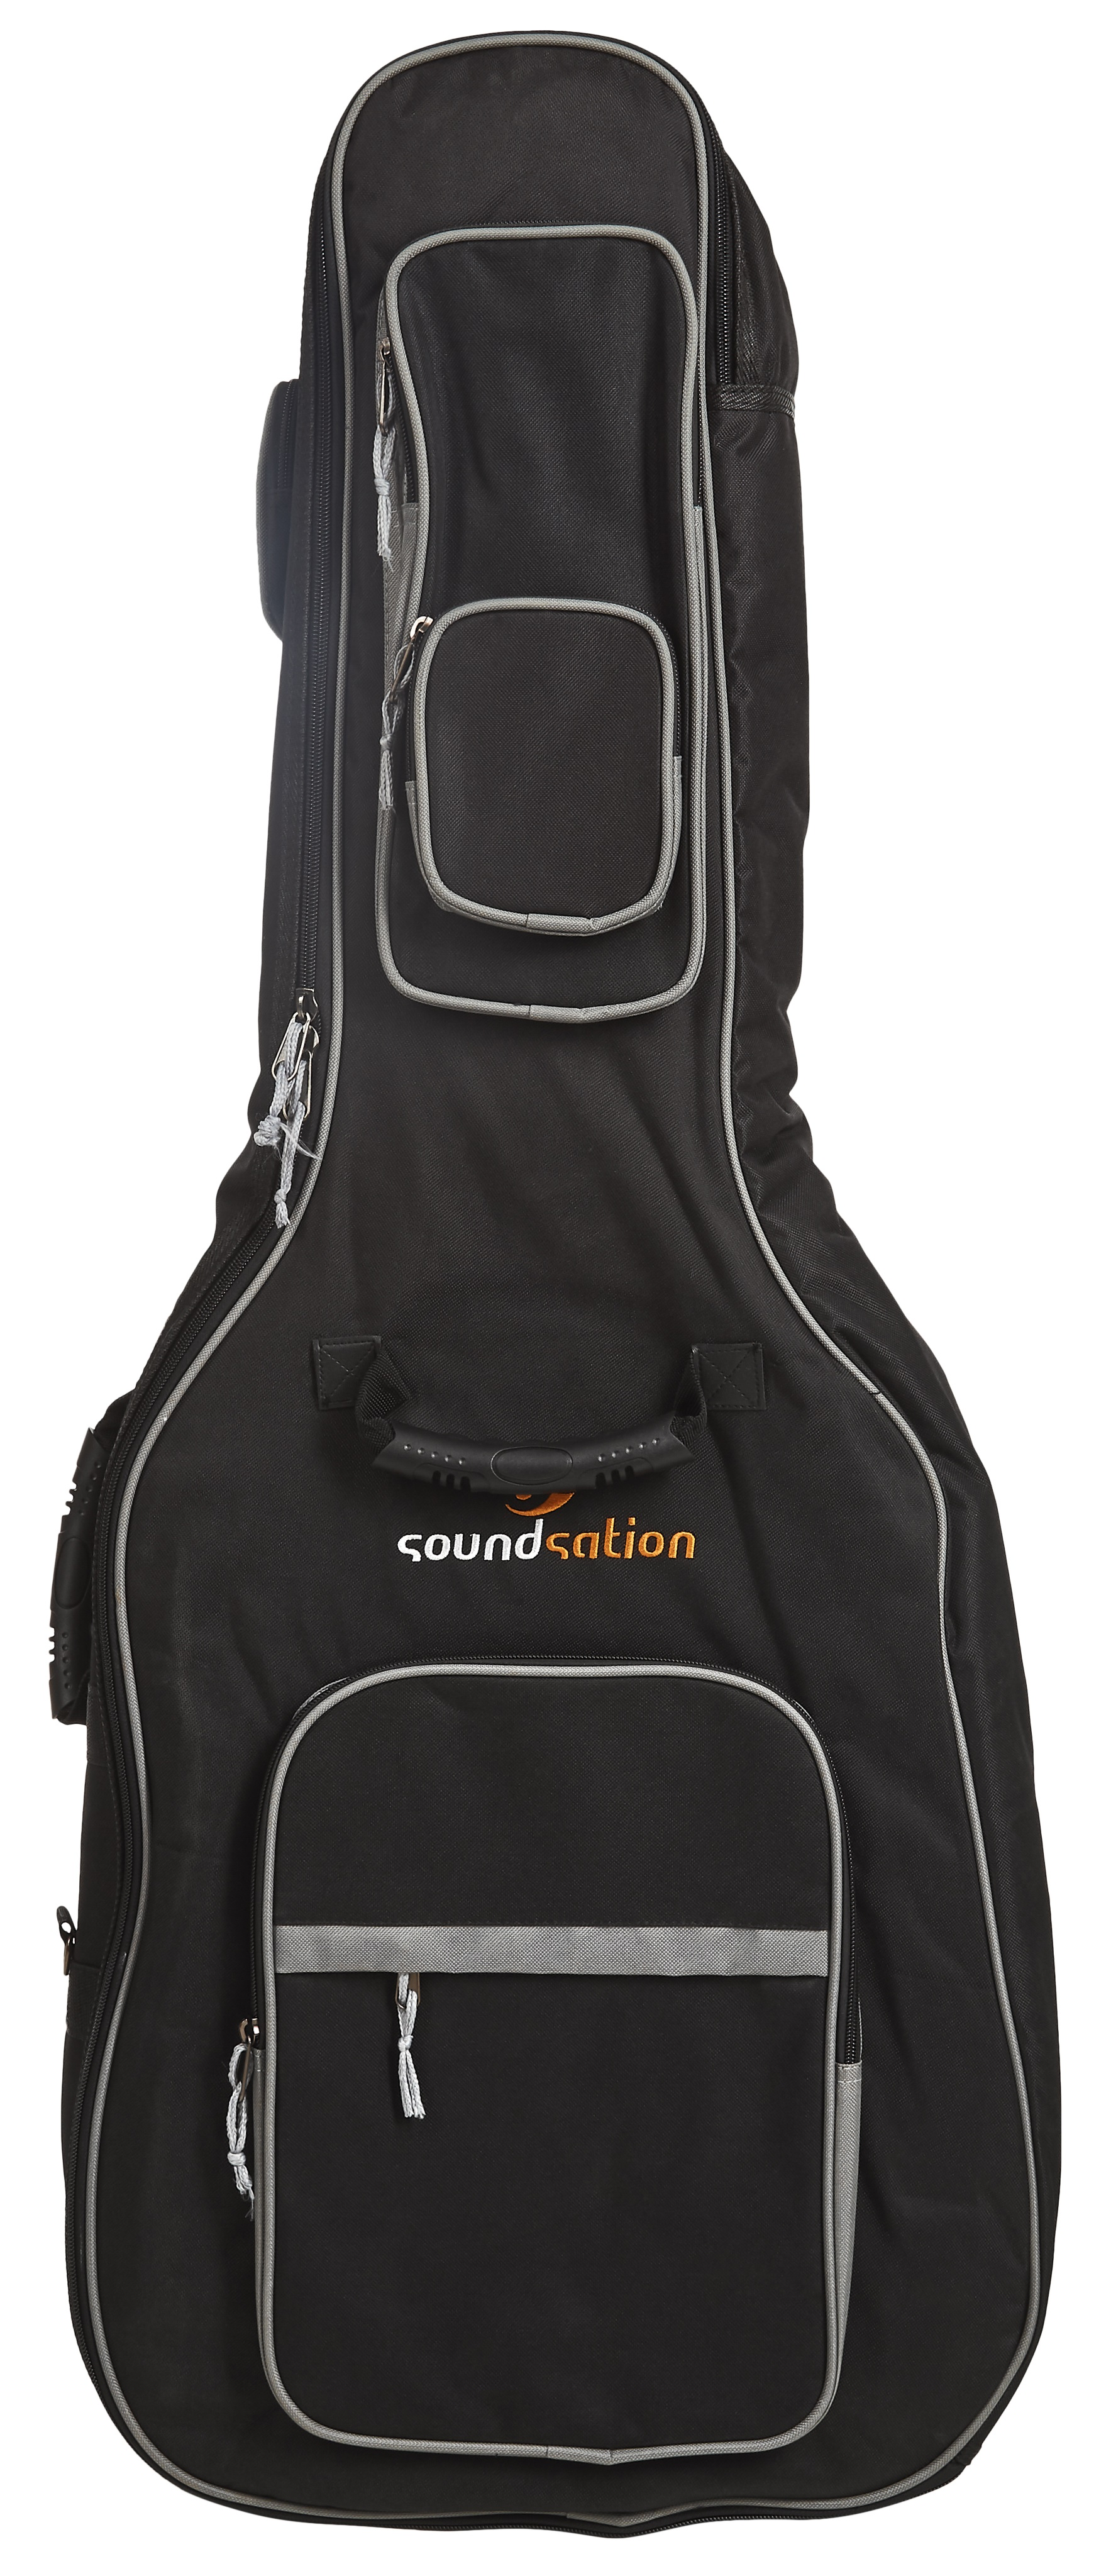 Soundsation SBG-30-CG